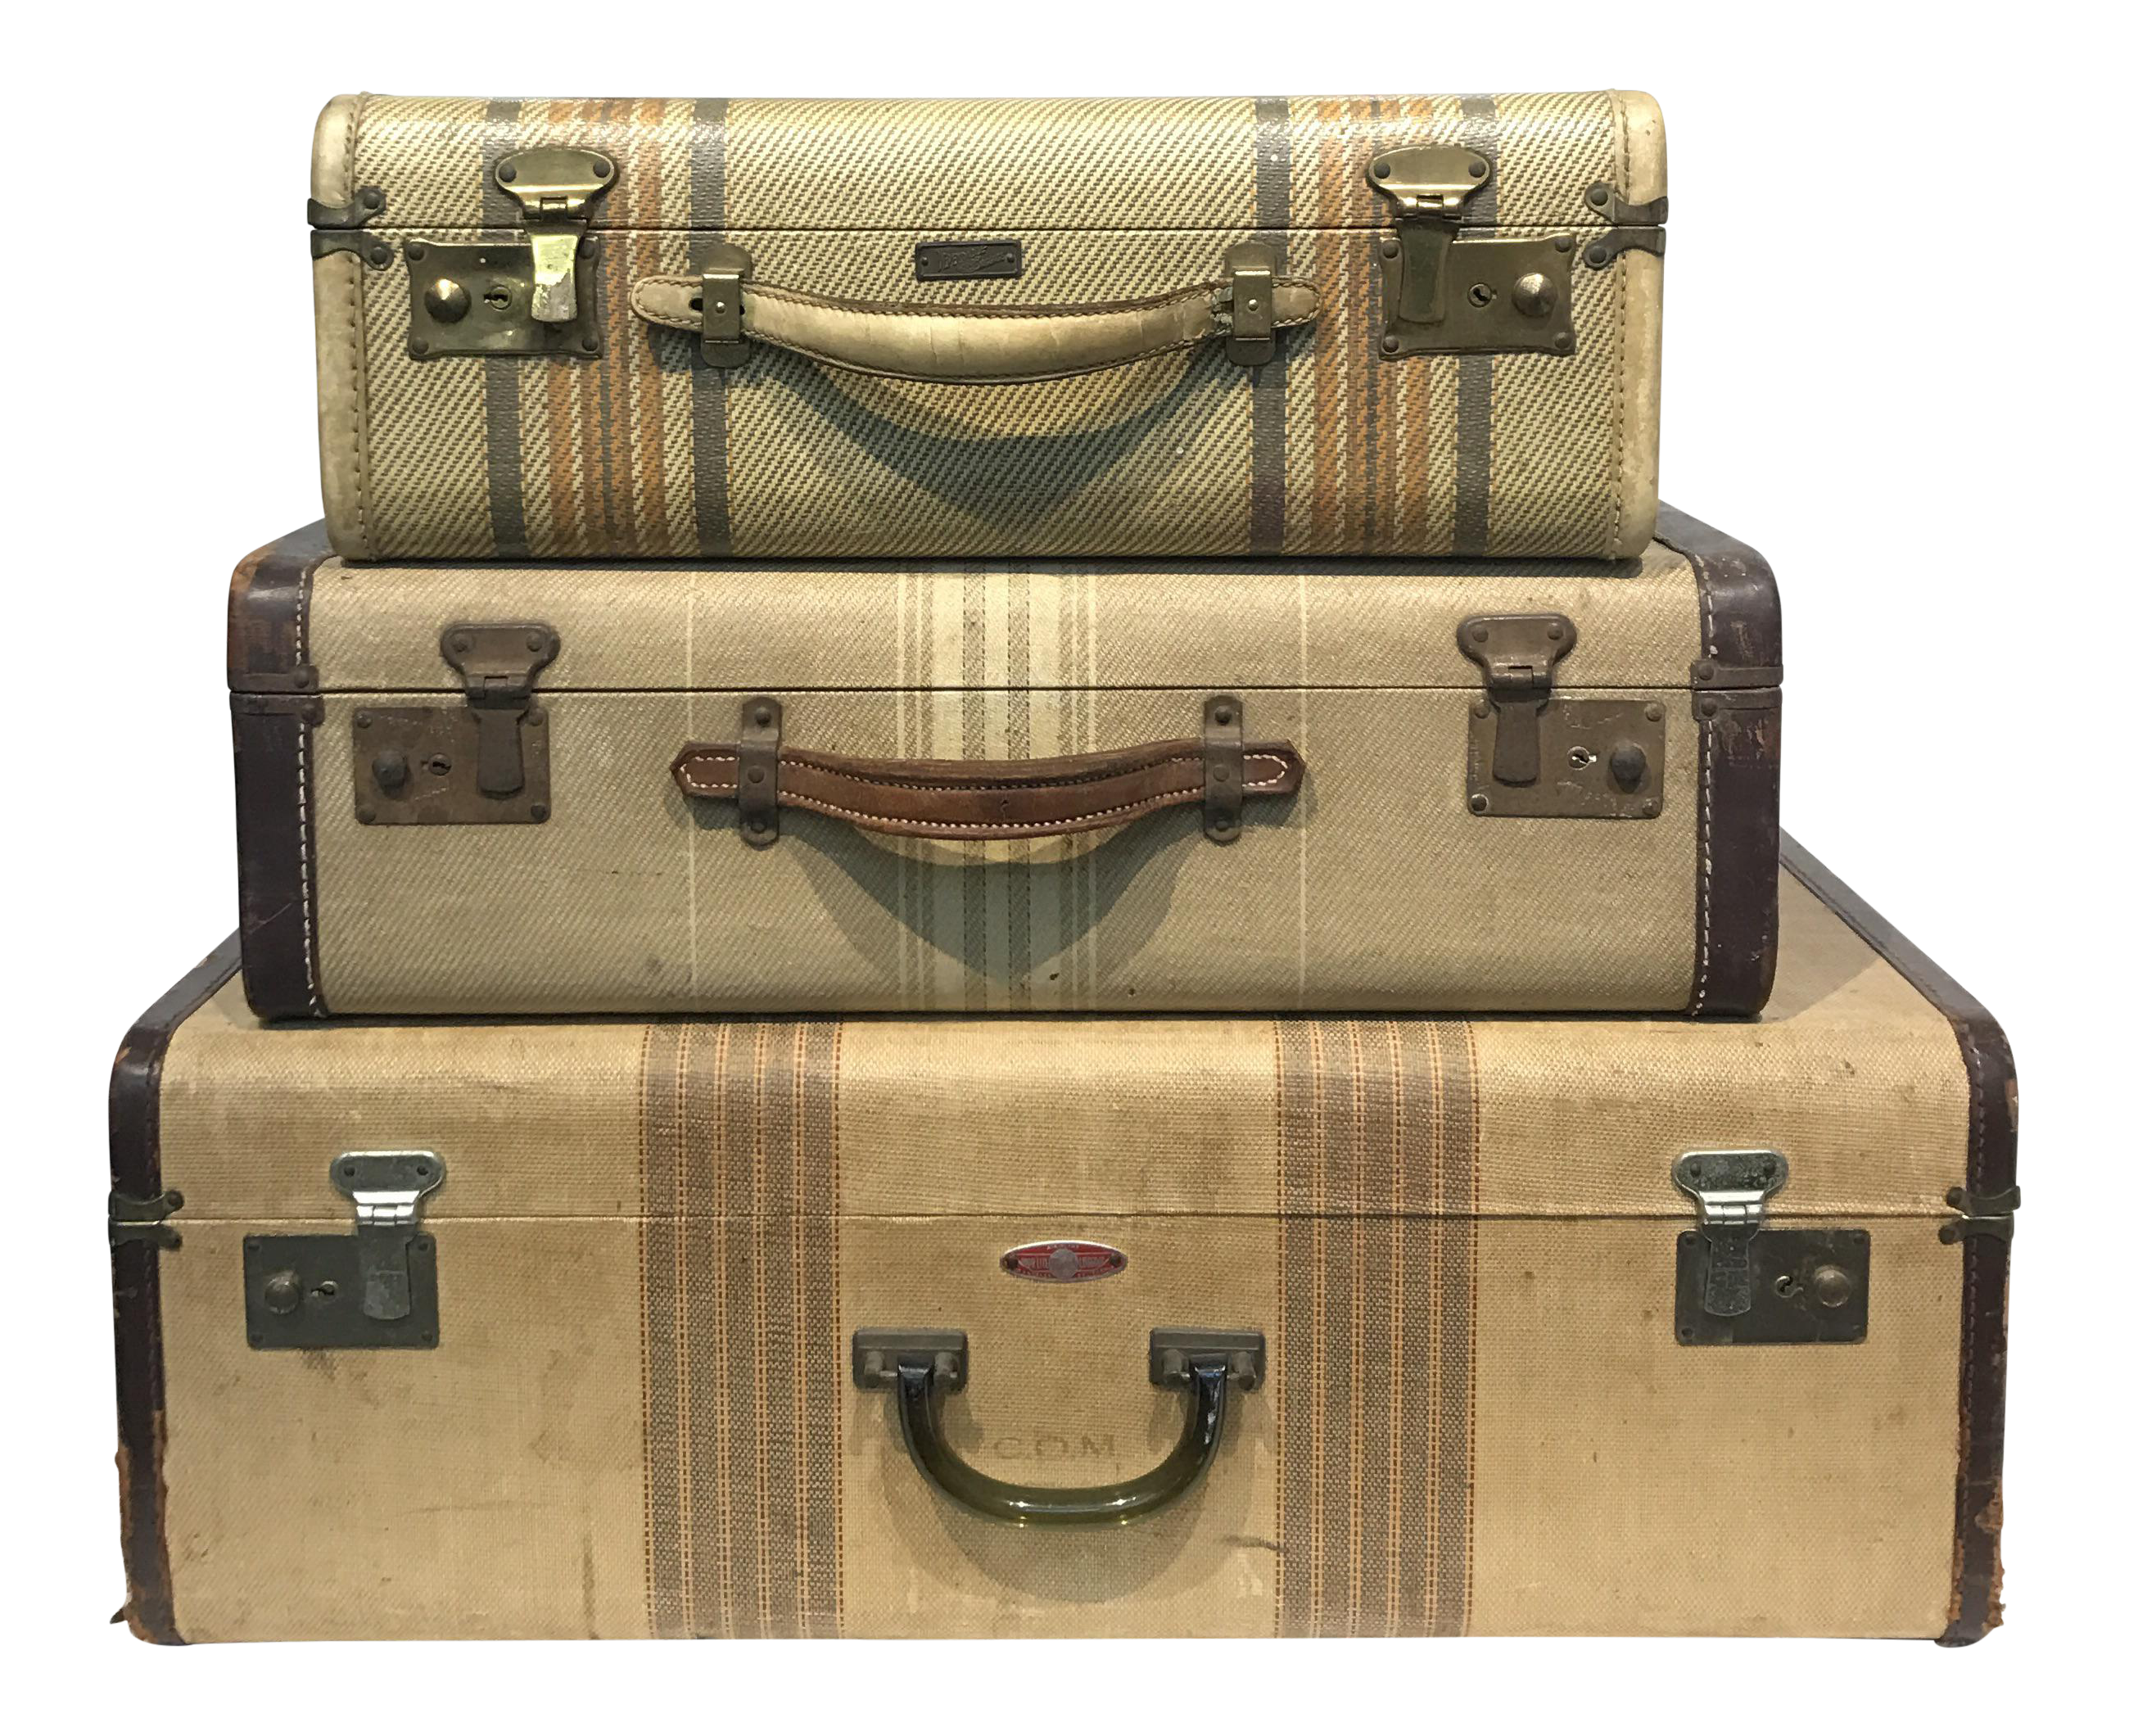 Luggage clip vintage suitcase. Striped suitcases set of